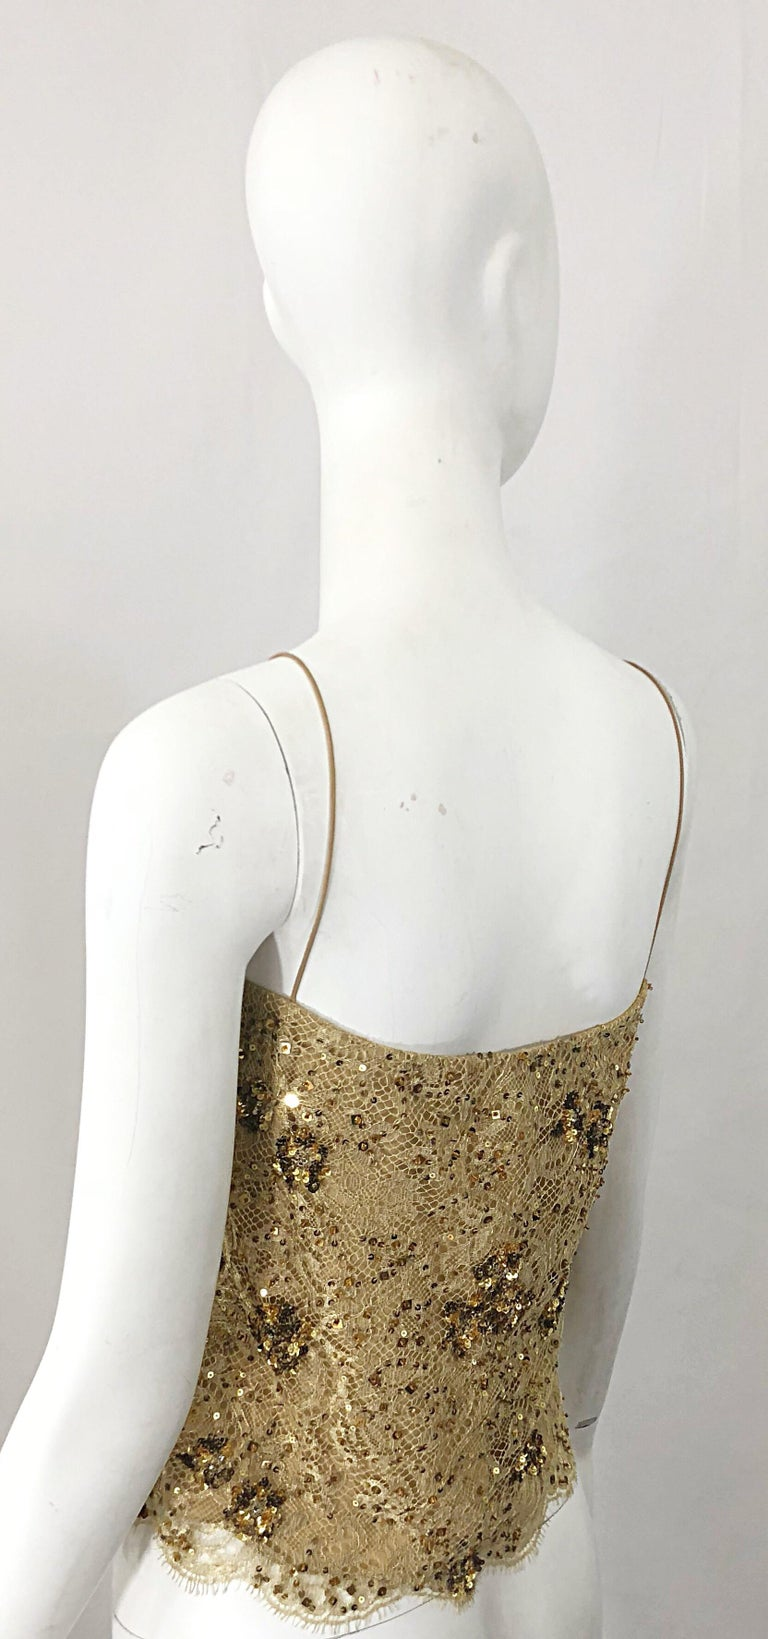 1990s Badgley Mischka Size 10 / 12 Gold Lace Sequins and Beads Vintage 90s Top For Sale 6